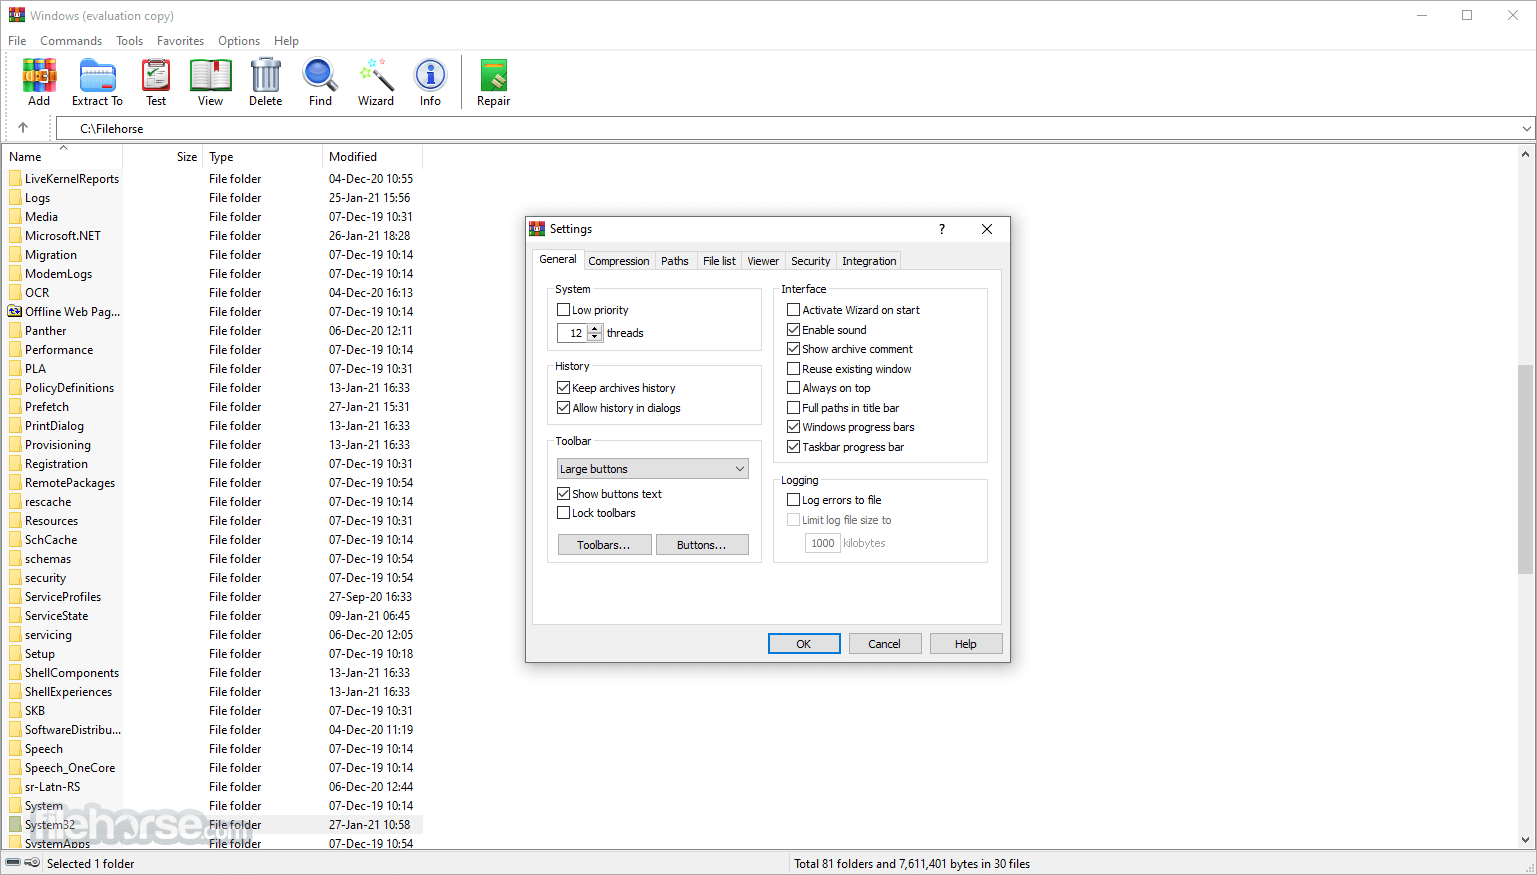 WinRAR 5.50 Beta 4 (32-bit) Screenshot 4